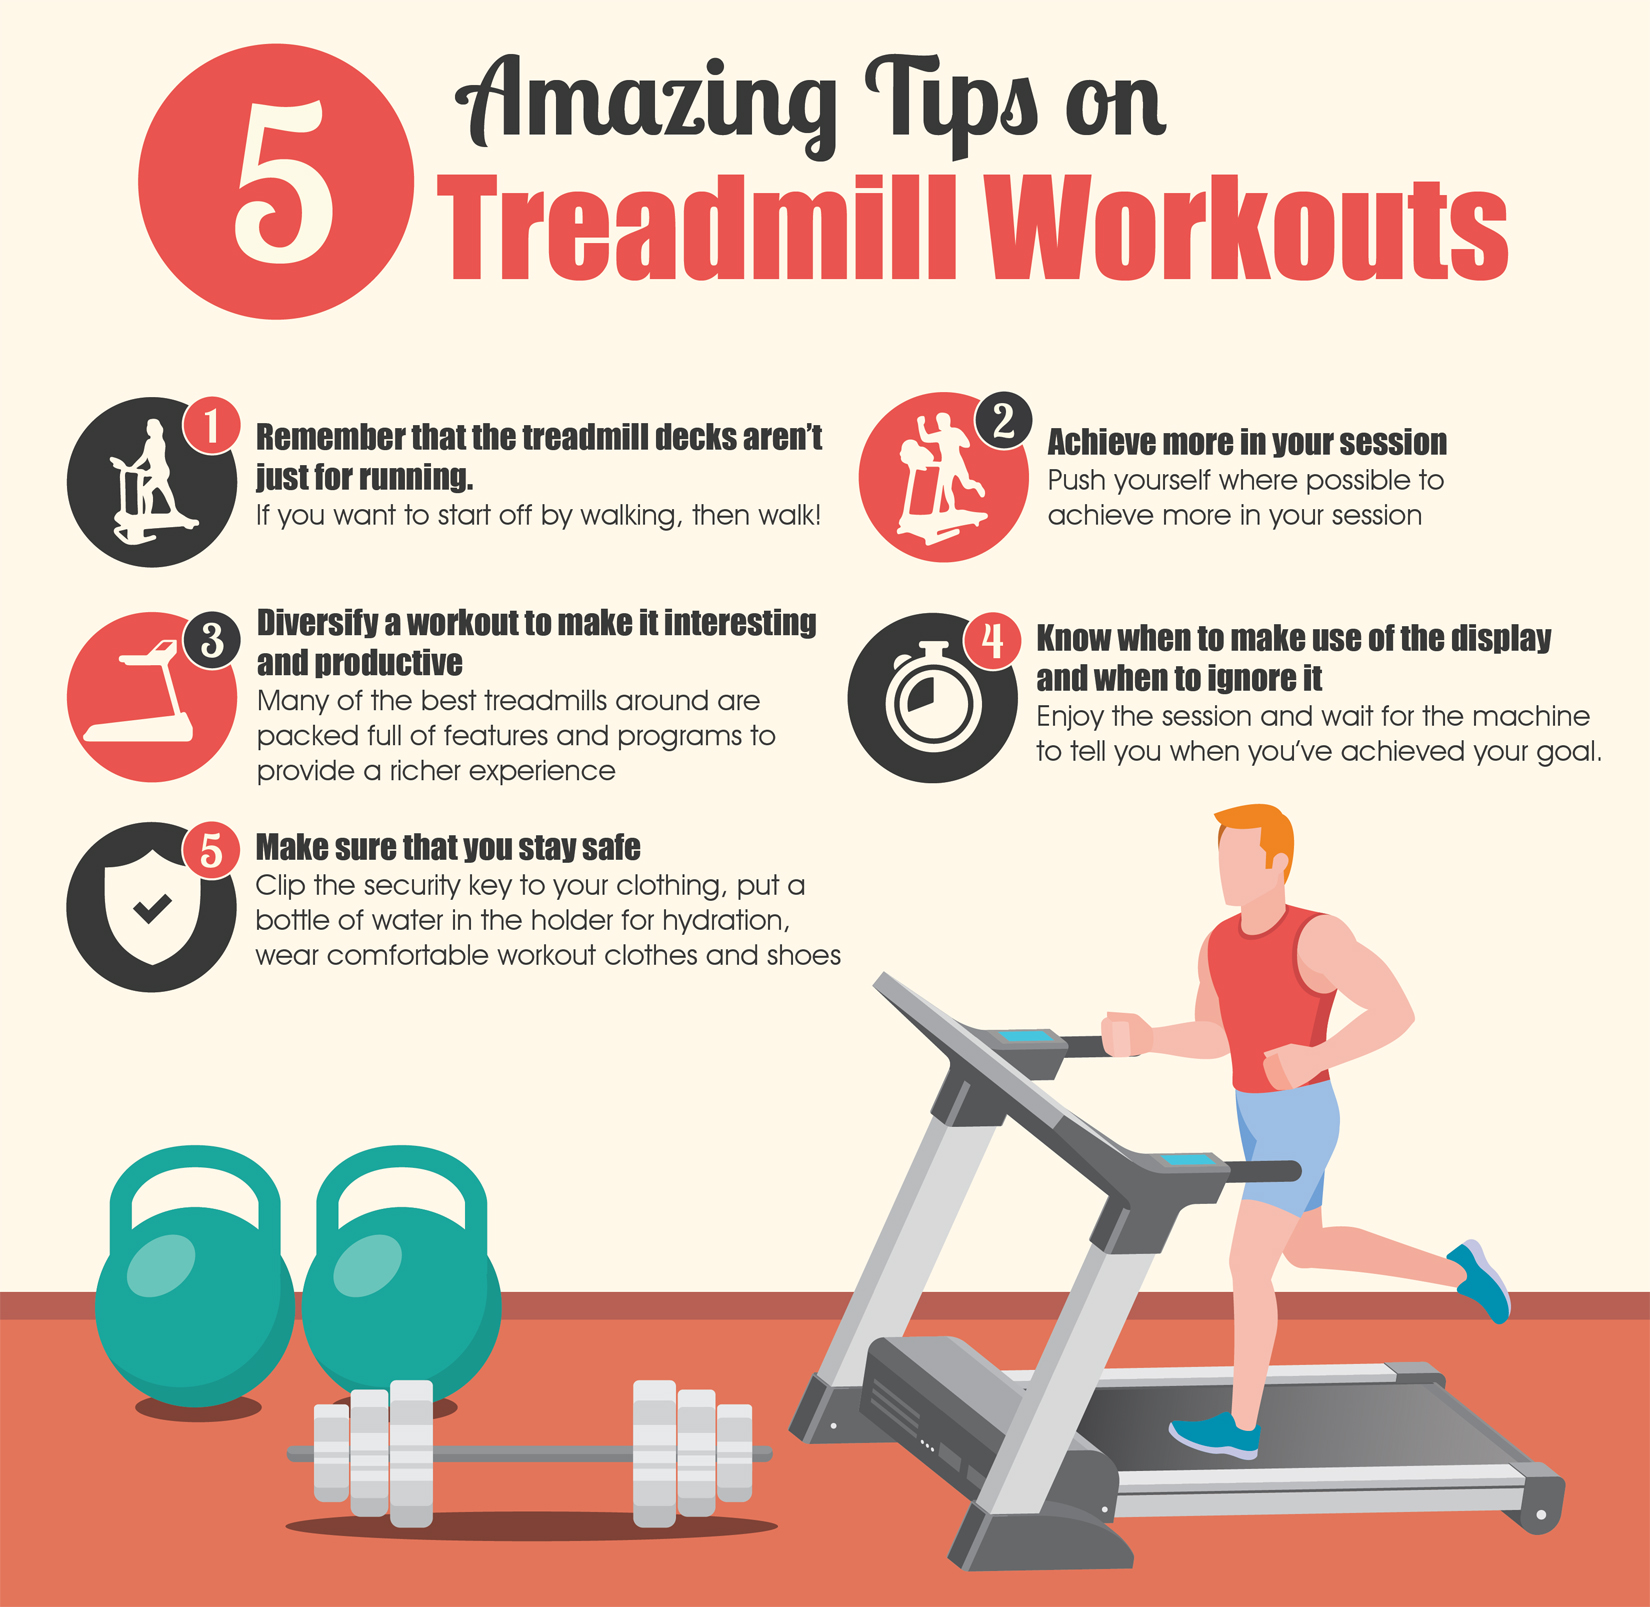 5 Amazing Tips on Treadmill Workouts